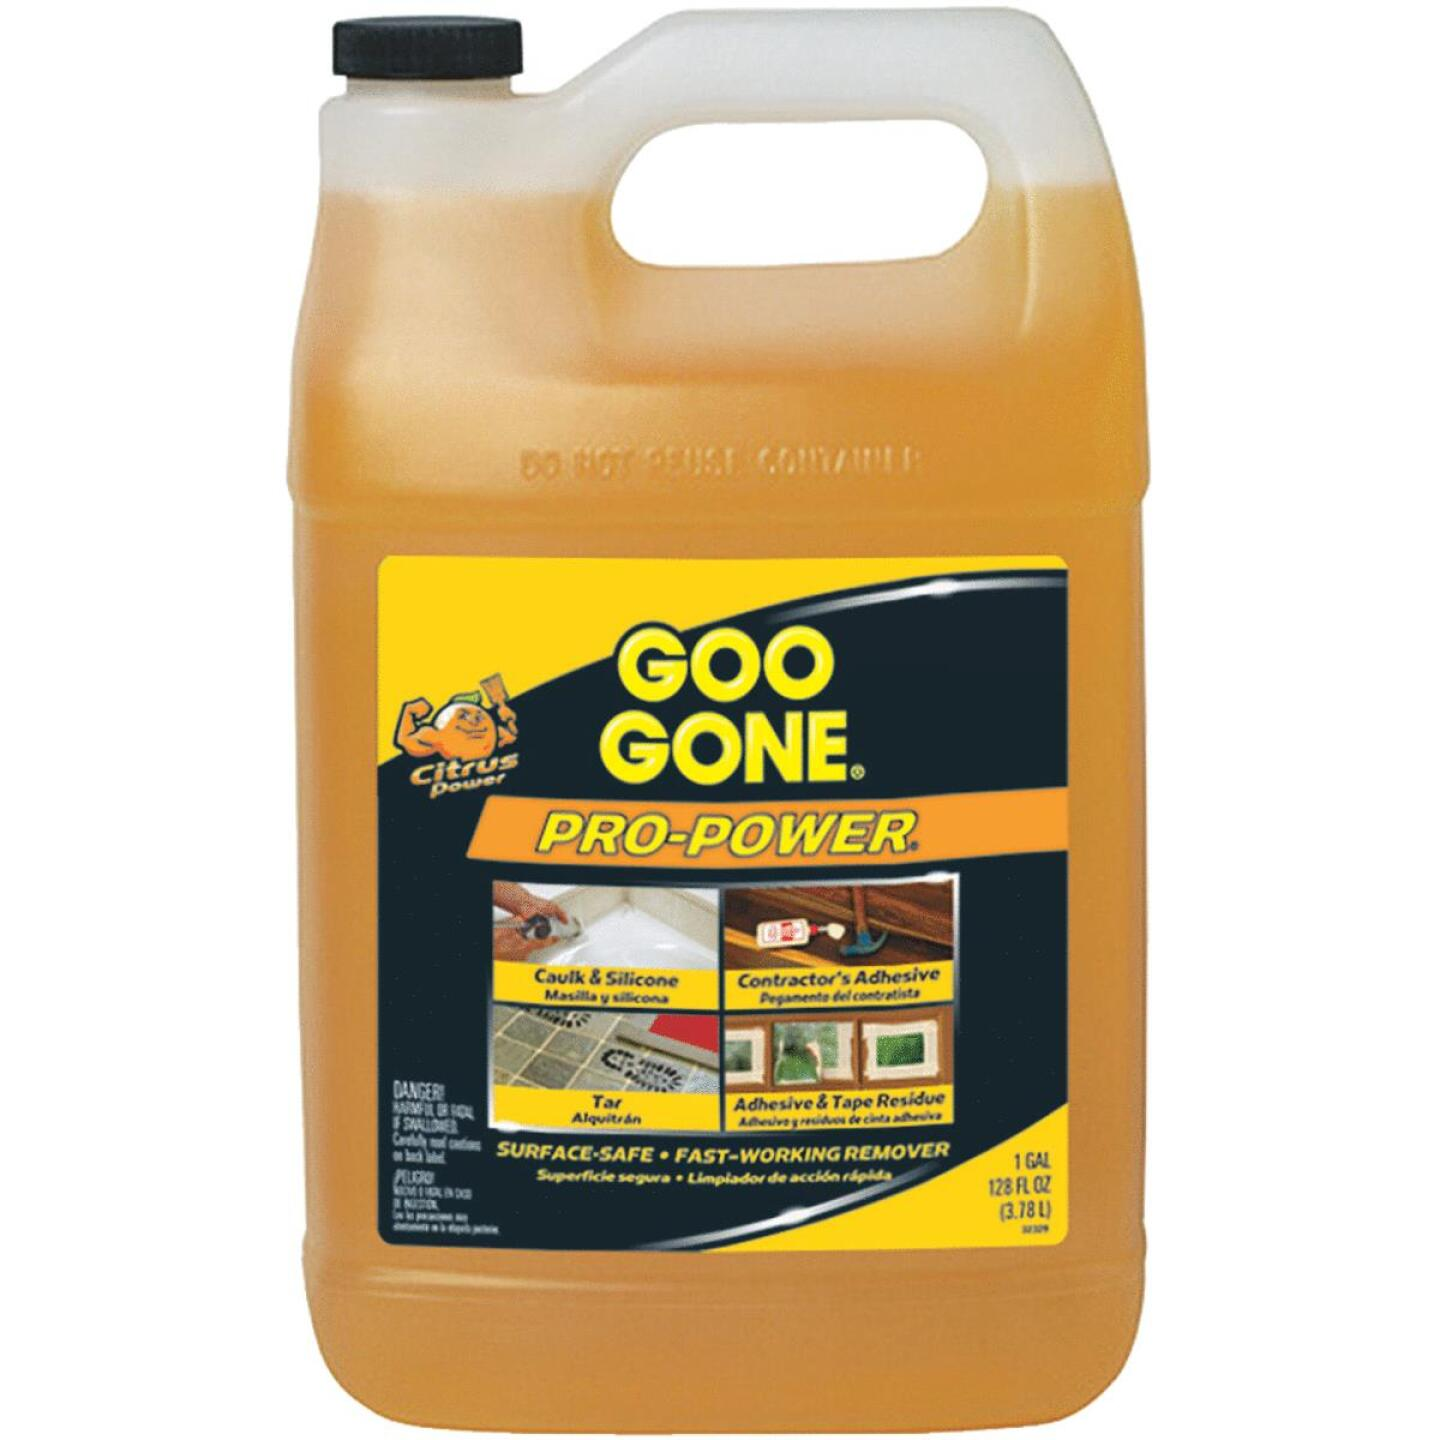 Goo Gone 1 Gal. Pro-Power Adhesive Remover Image 284